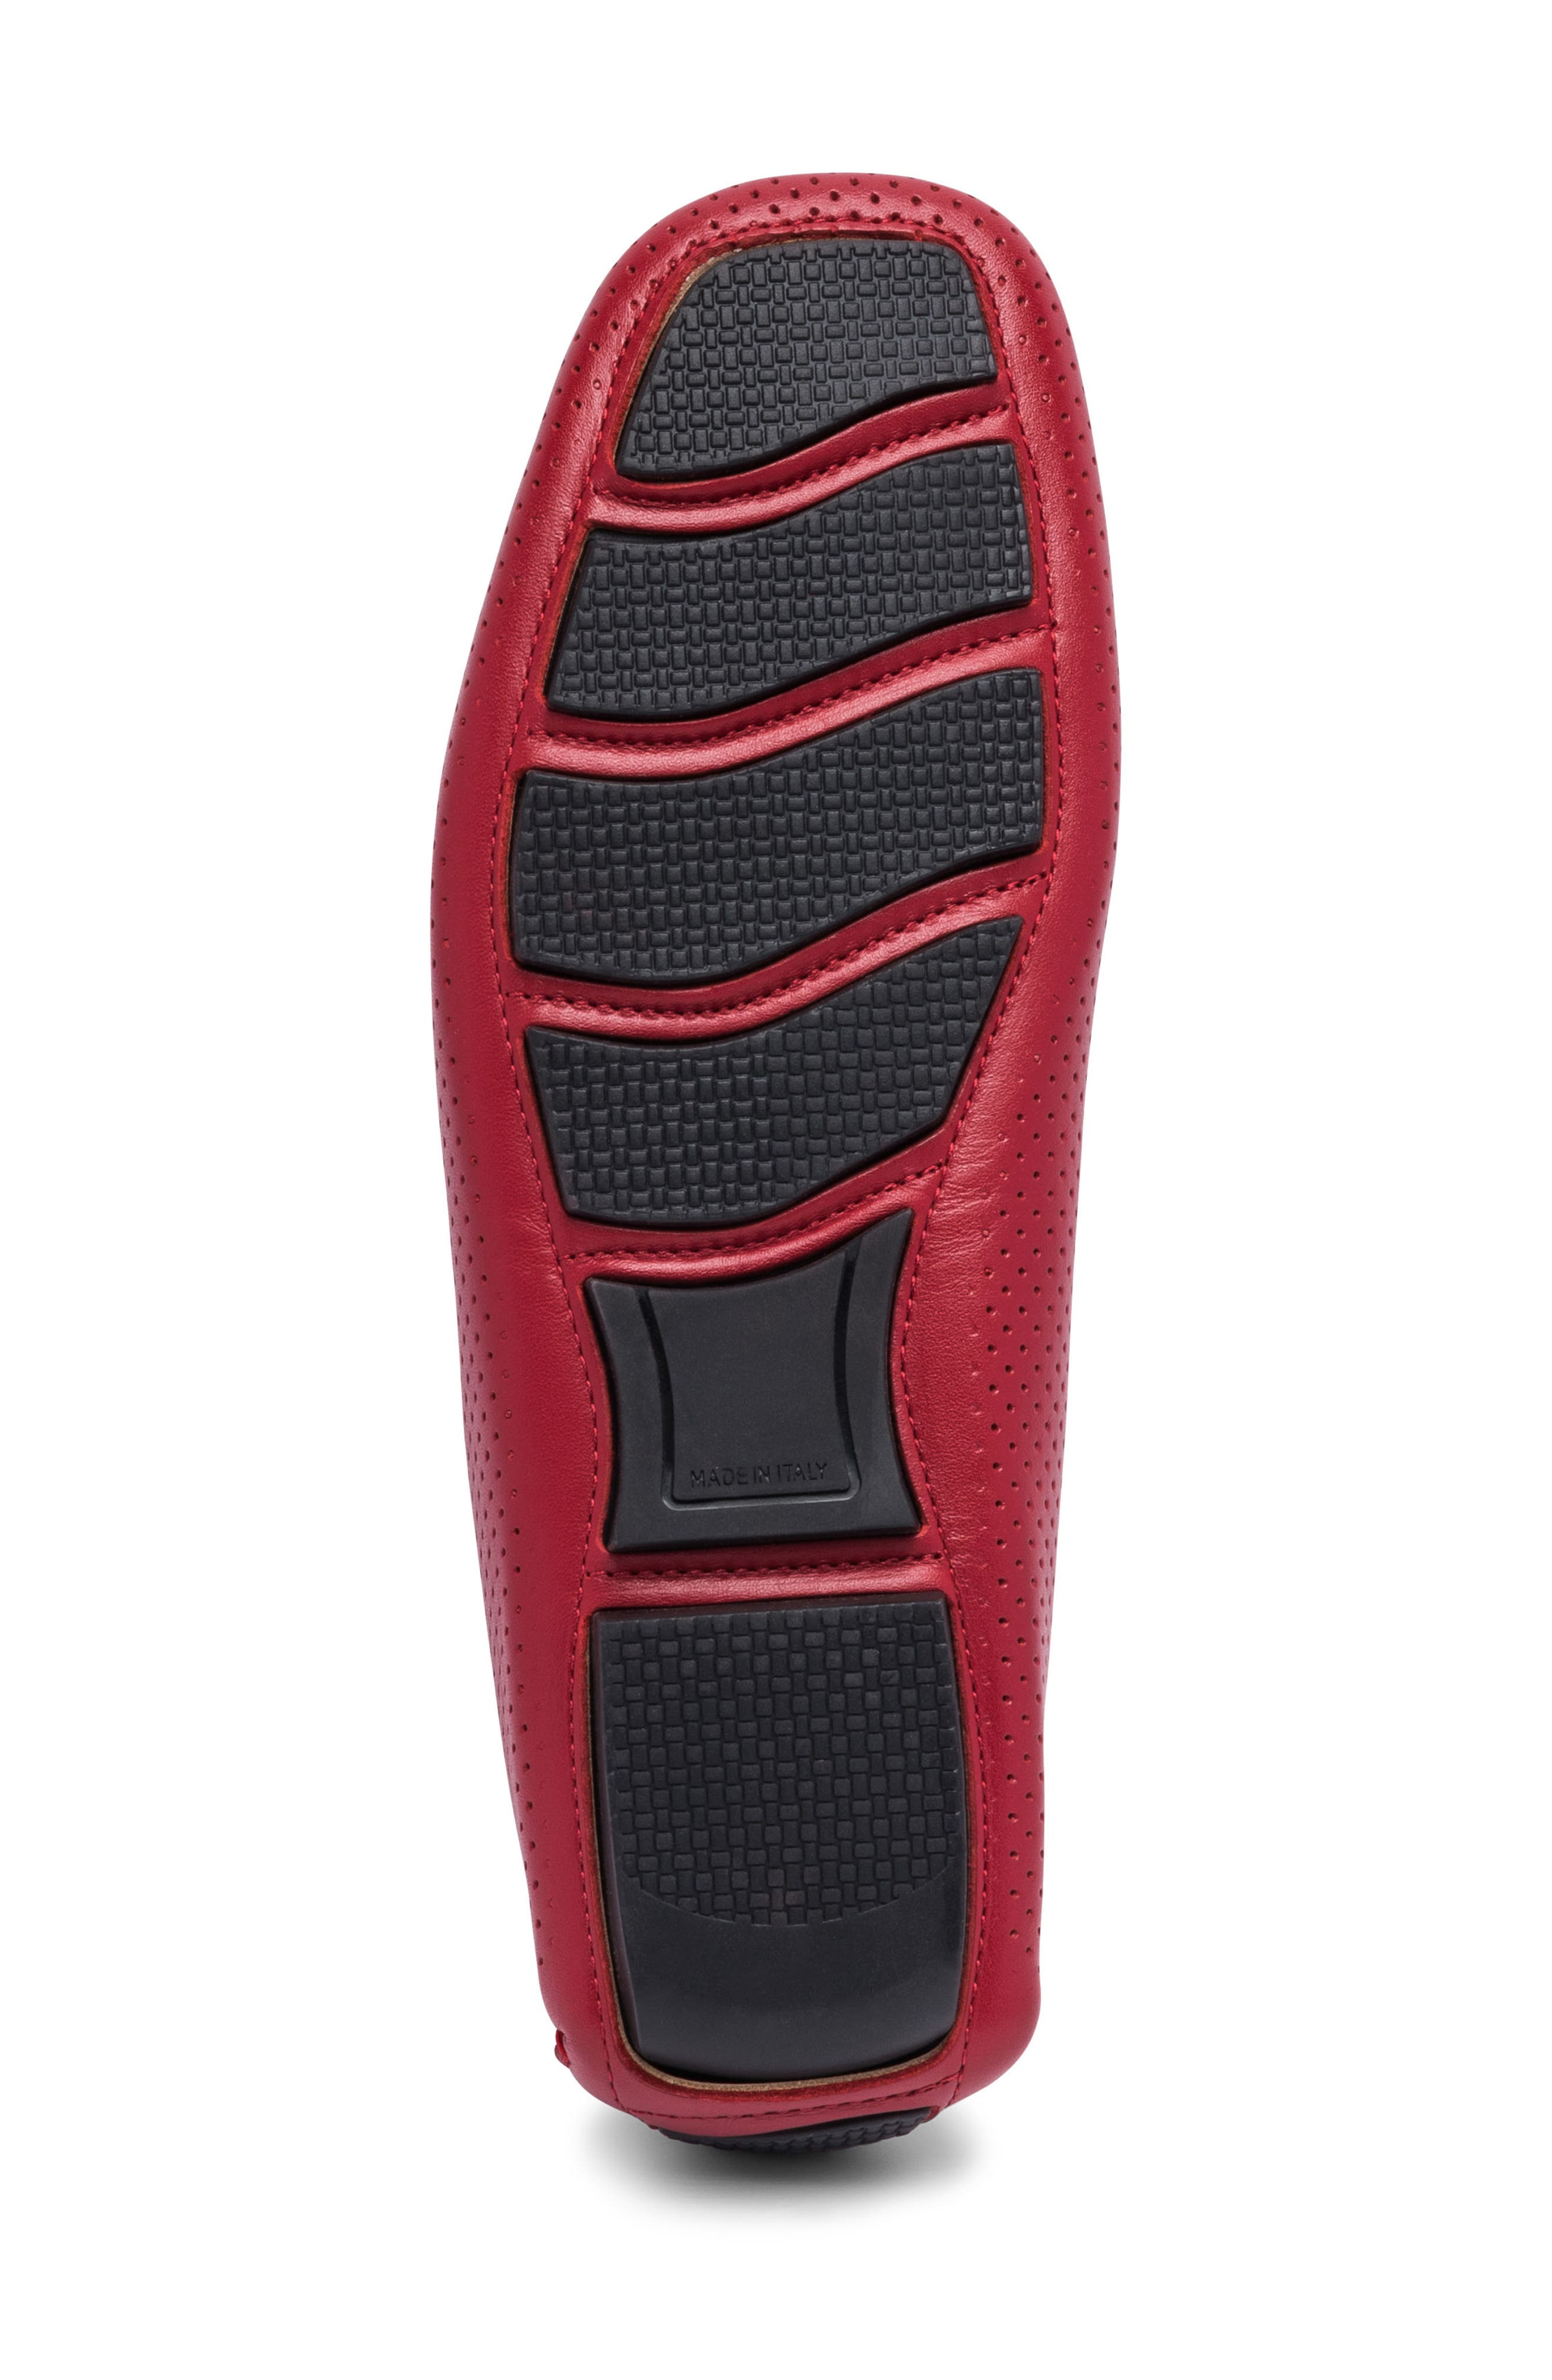 Sardegna Driving Shoe,                             Alternate thumbnail 6, color,                             RED LEATHER